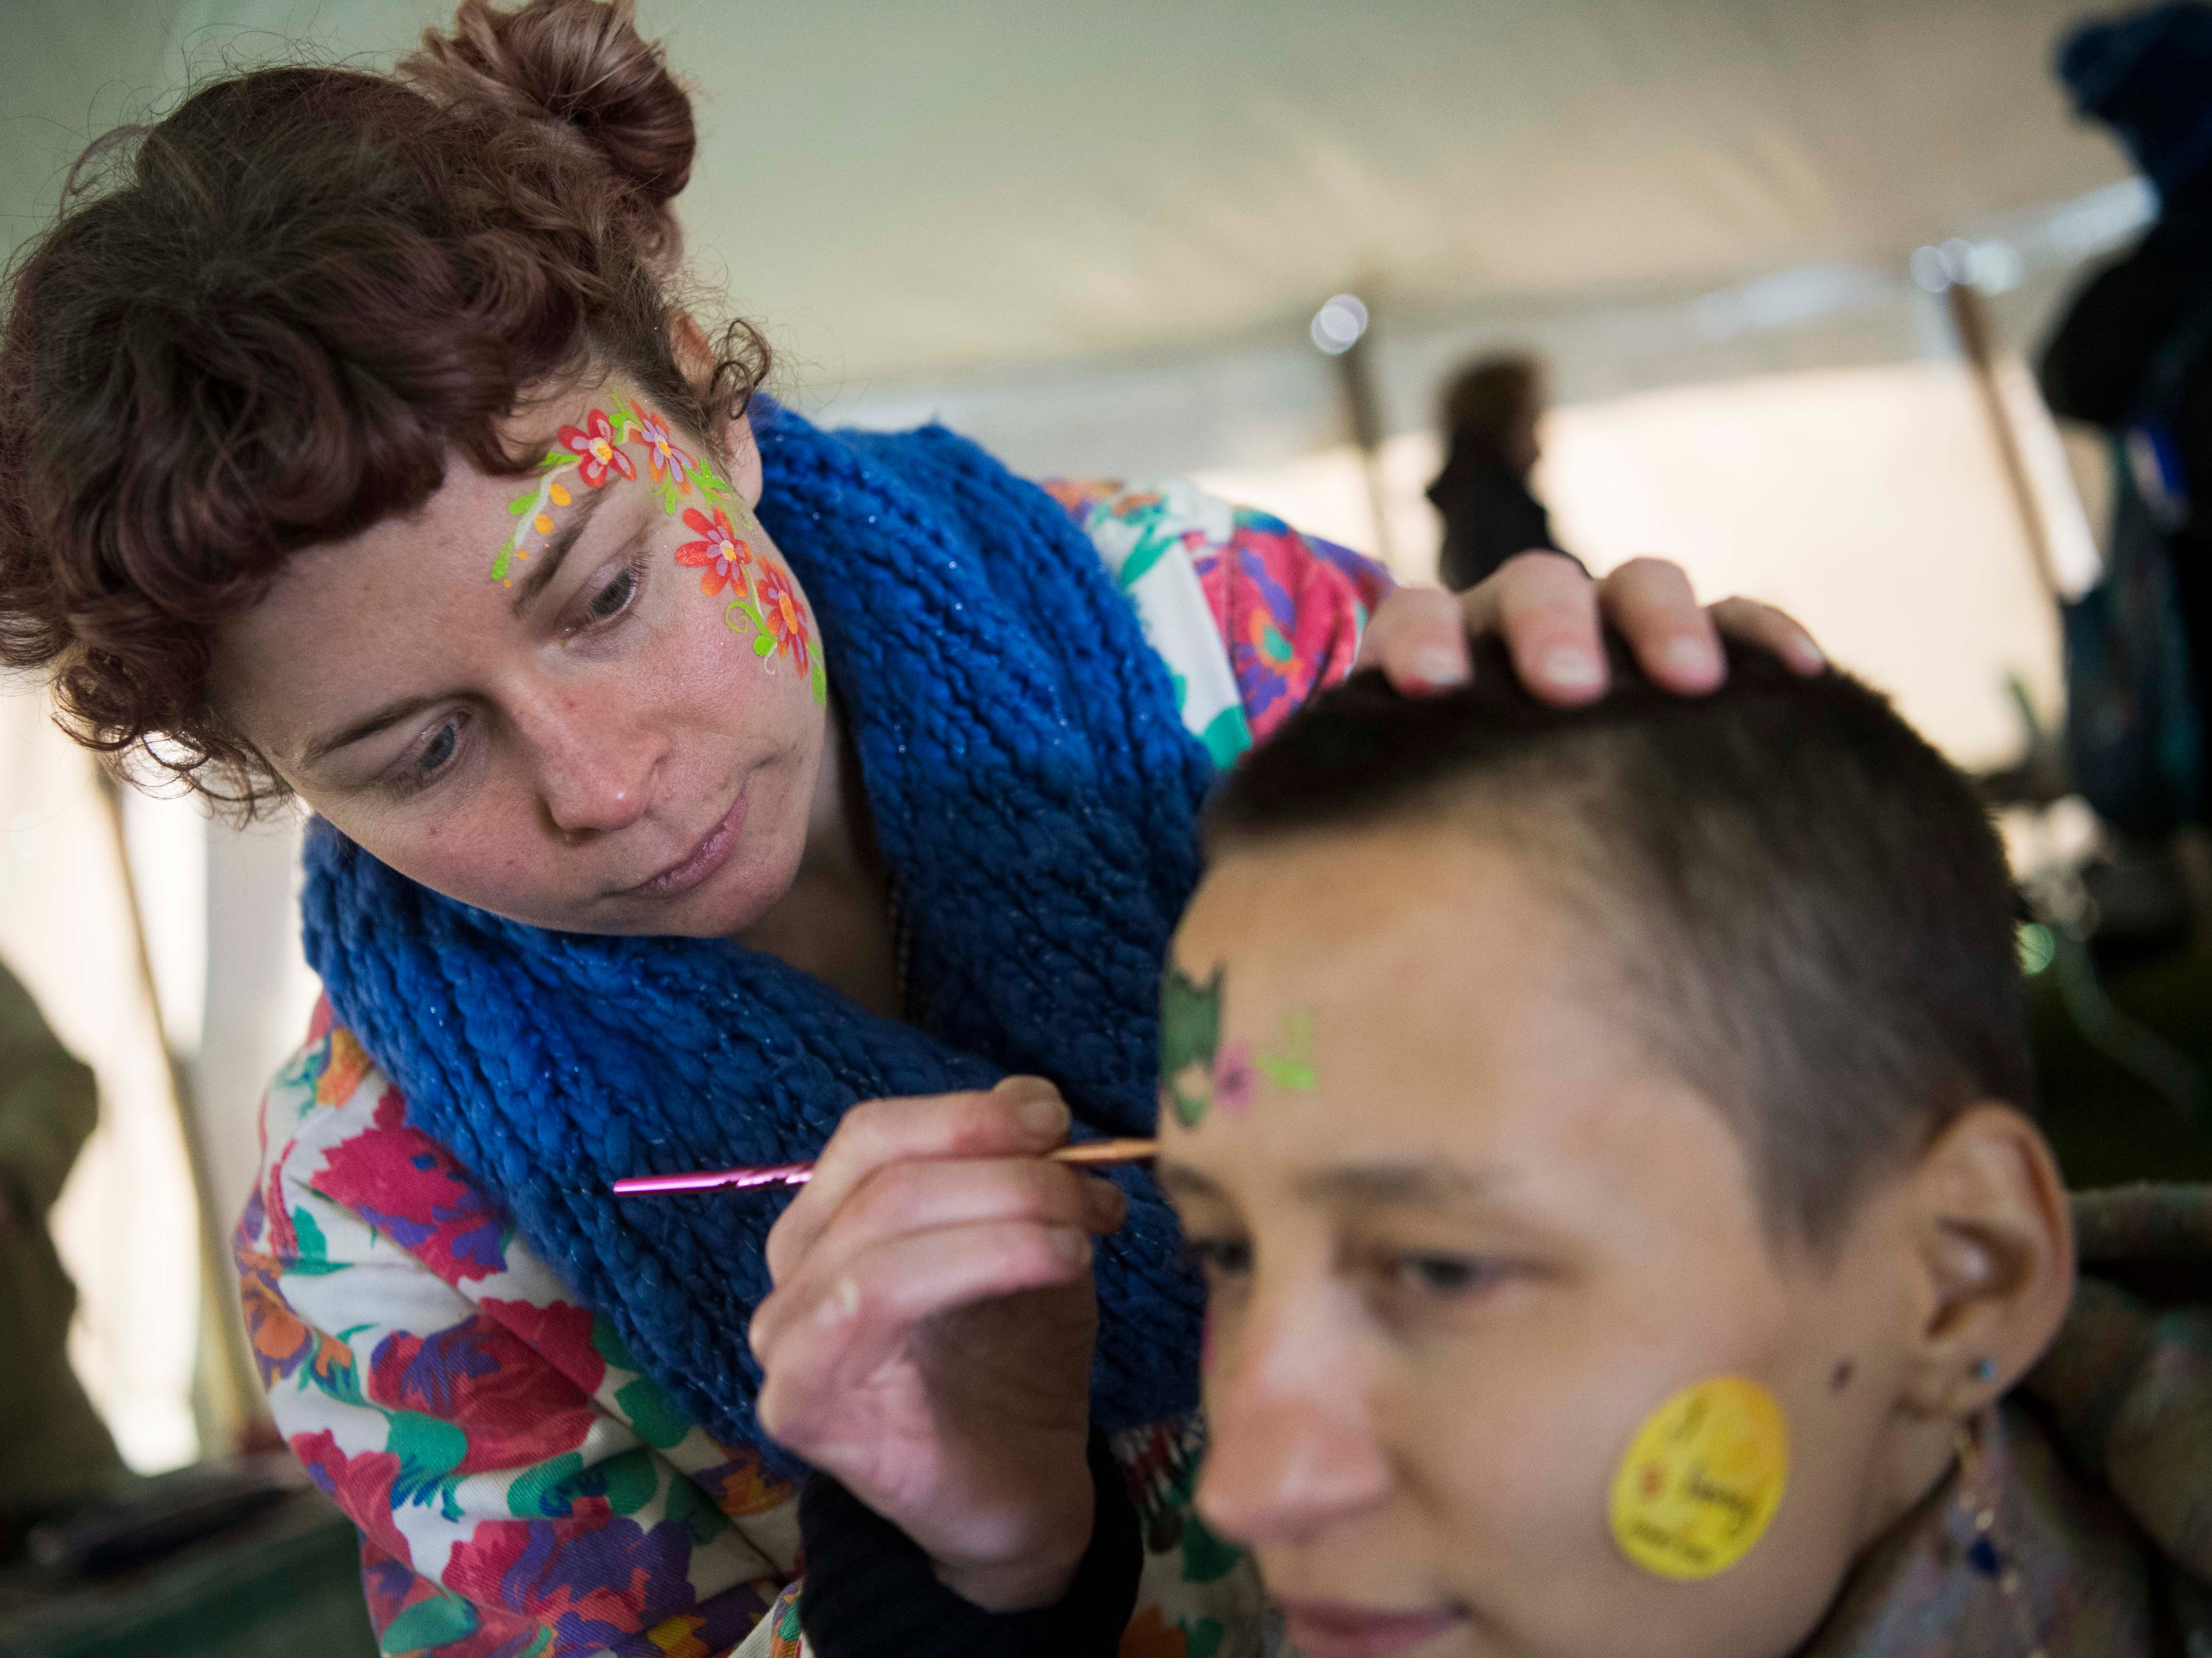 Emma McNall of Corelli art studio, paints Maria Campbell of West Knoxville's face at Earthfest 2019 at the Knoxville Botanical Gardens in East Knoxville, Saturday, April 20, 2019.